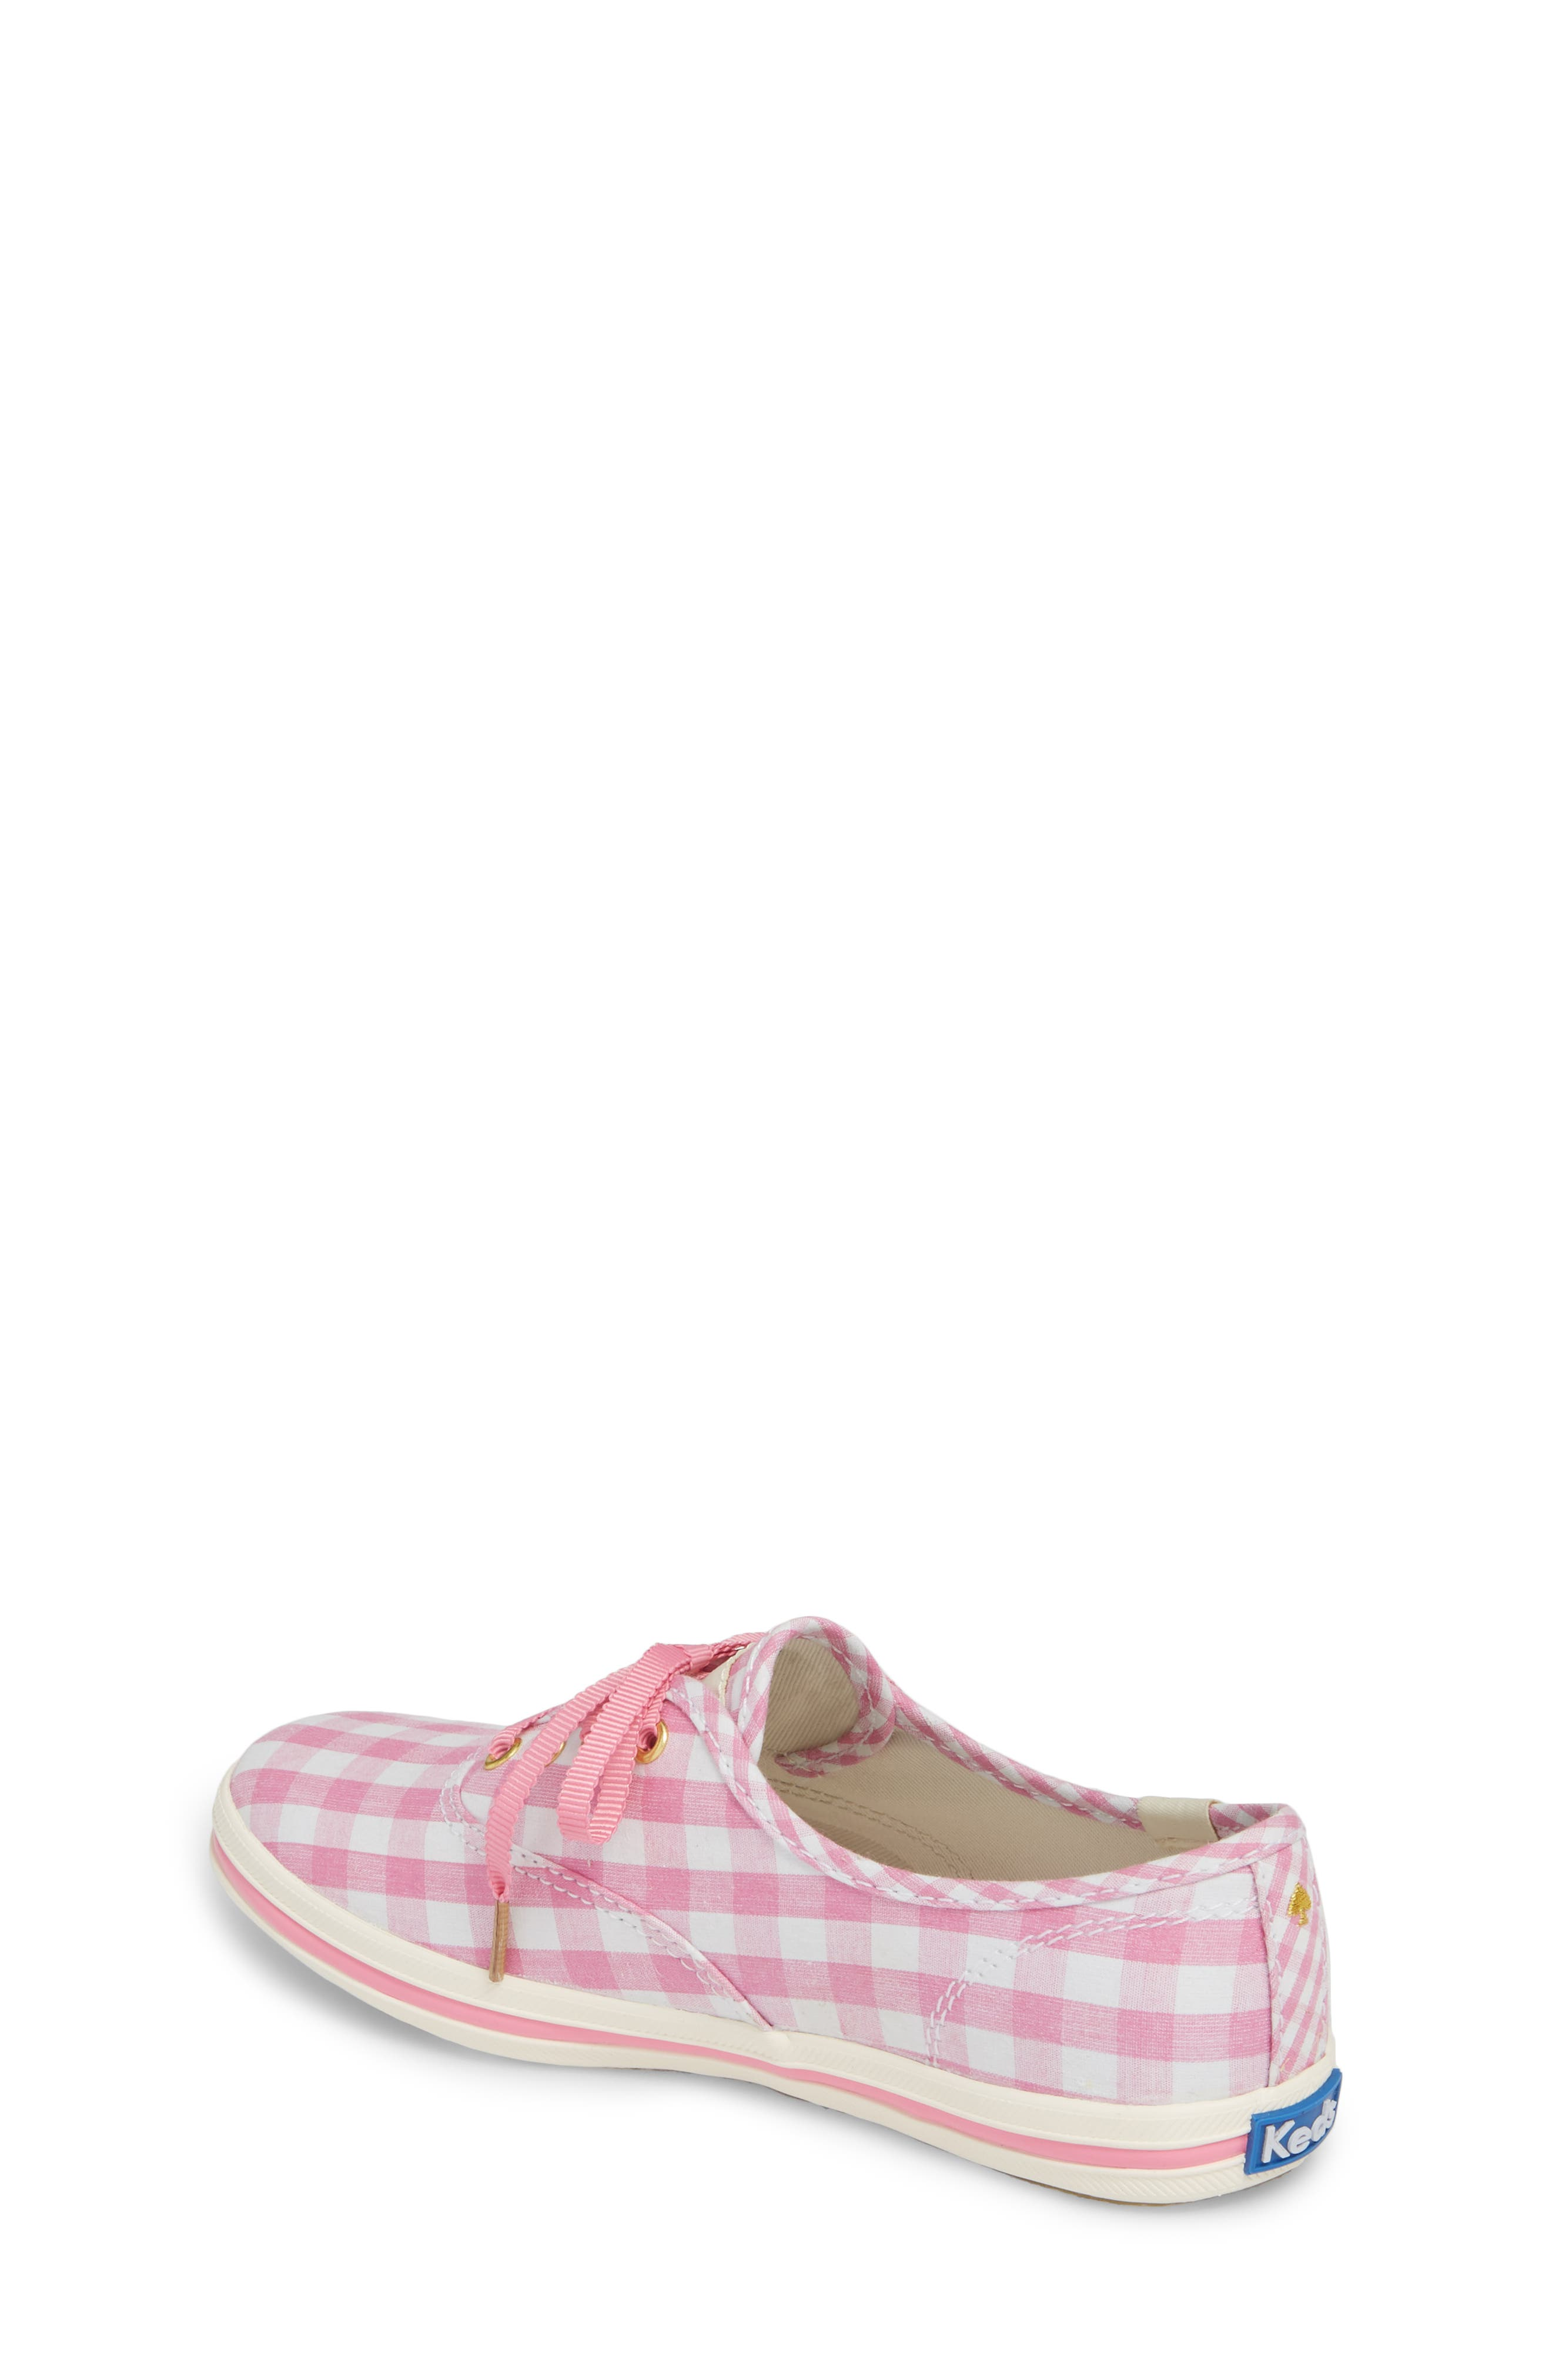 x kate spade new york champion gingham lace-up shoe,                             Alternate thumbnail 2, color,                             650